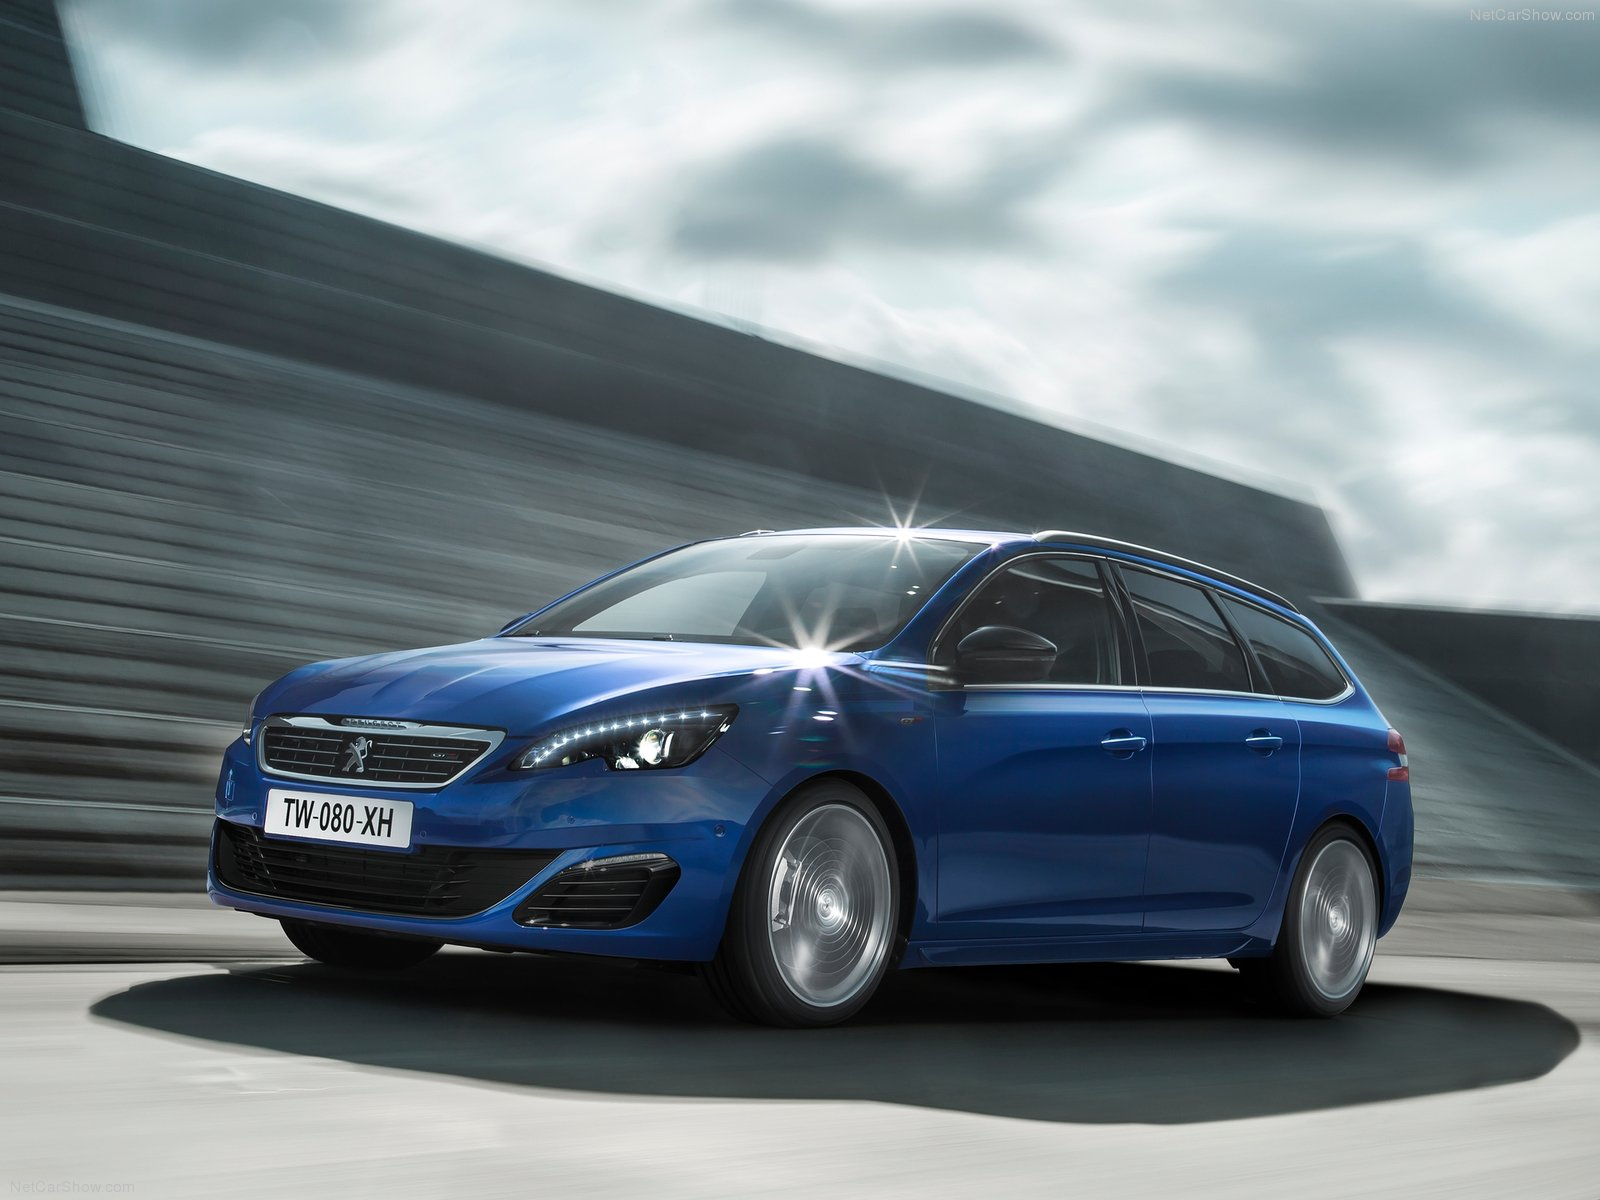 Peugeot 308 SW GT picture #129986 | Peugeot photo gallery | CarsBase.com